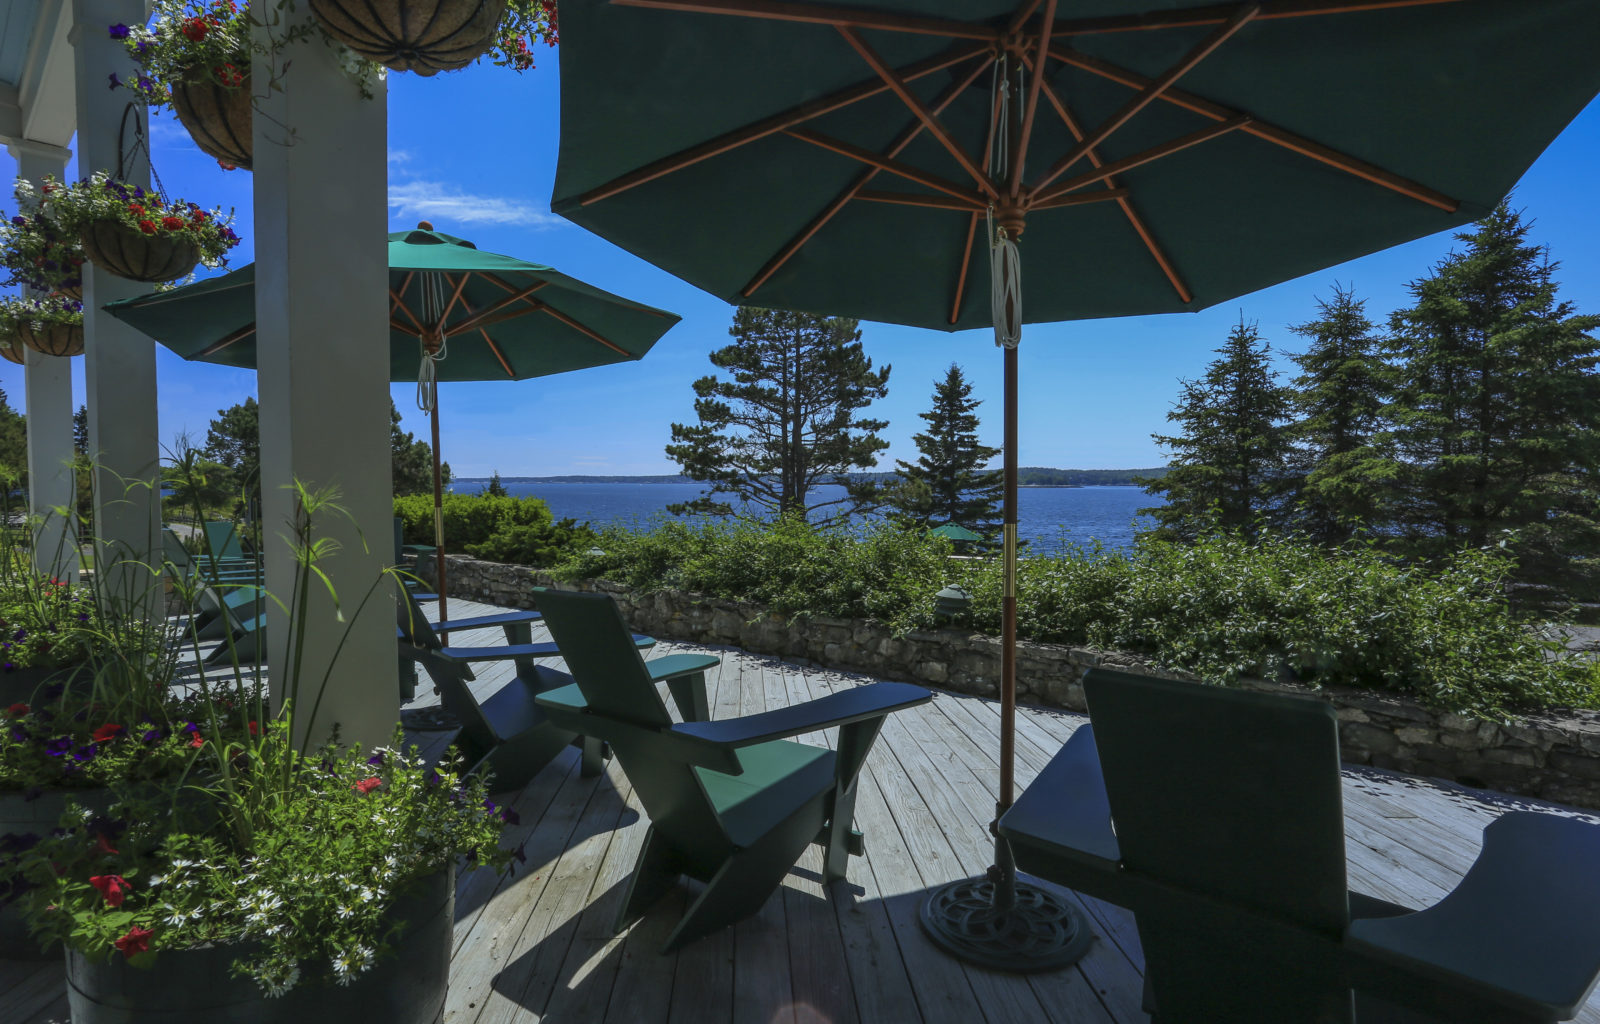 Oceanside Porch at the Spruce Point Inn